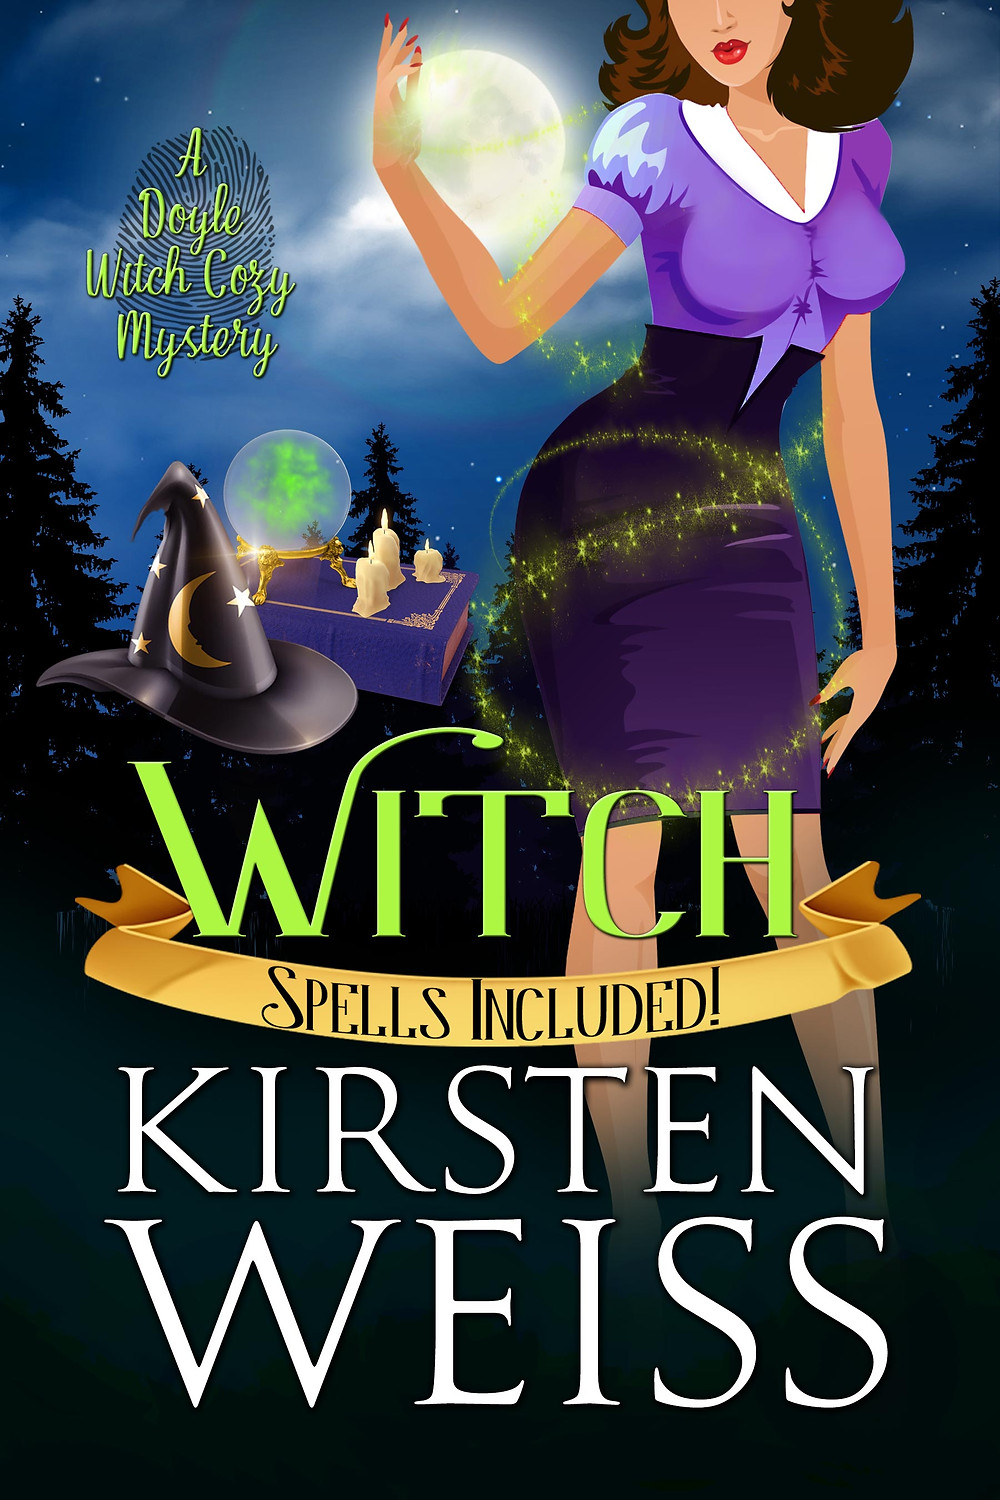 Witch a Doyle Witch Cozy Mystery book 4